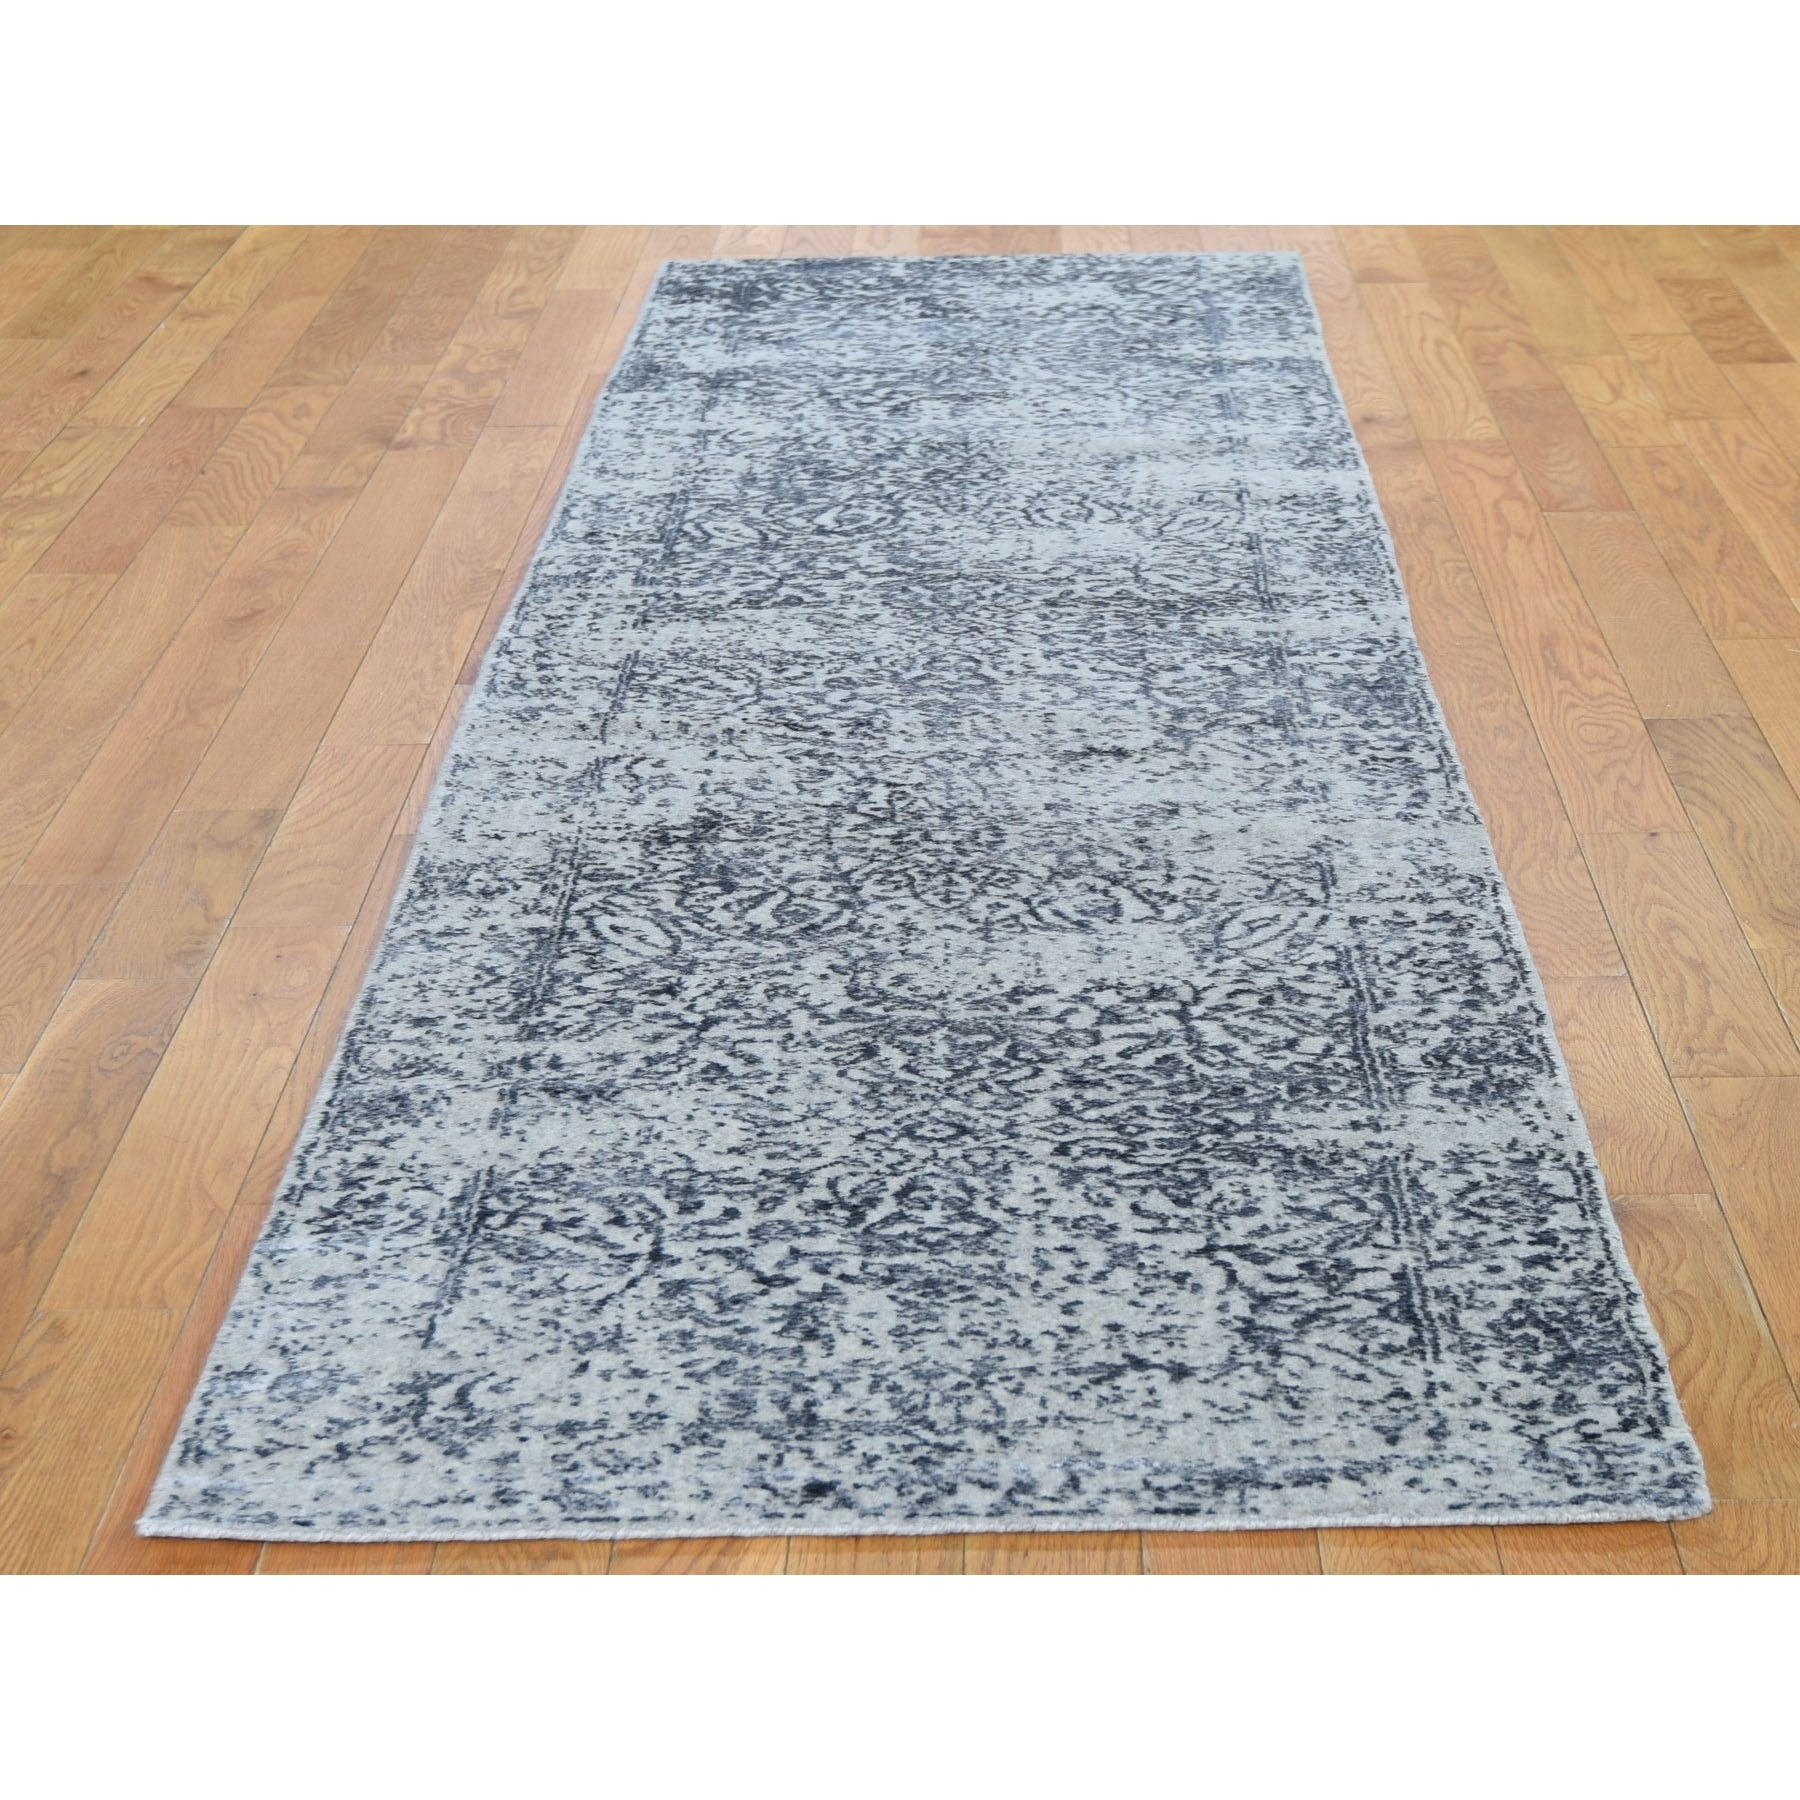 "2'5""x8'2""  Fine jacquard Hand Loomed Erased Design Wool And Silk Runner Oriental Rug"